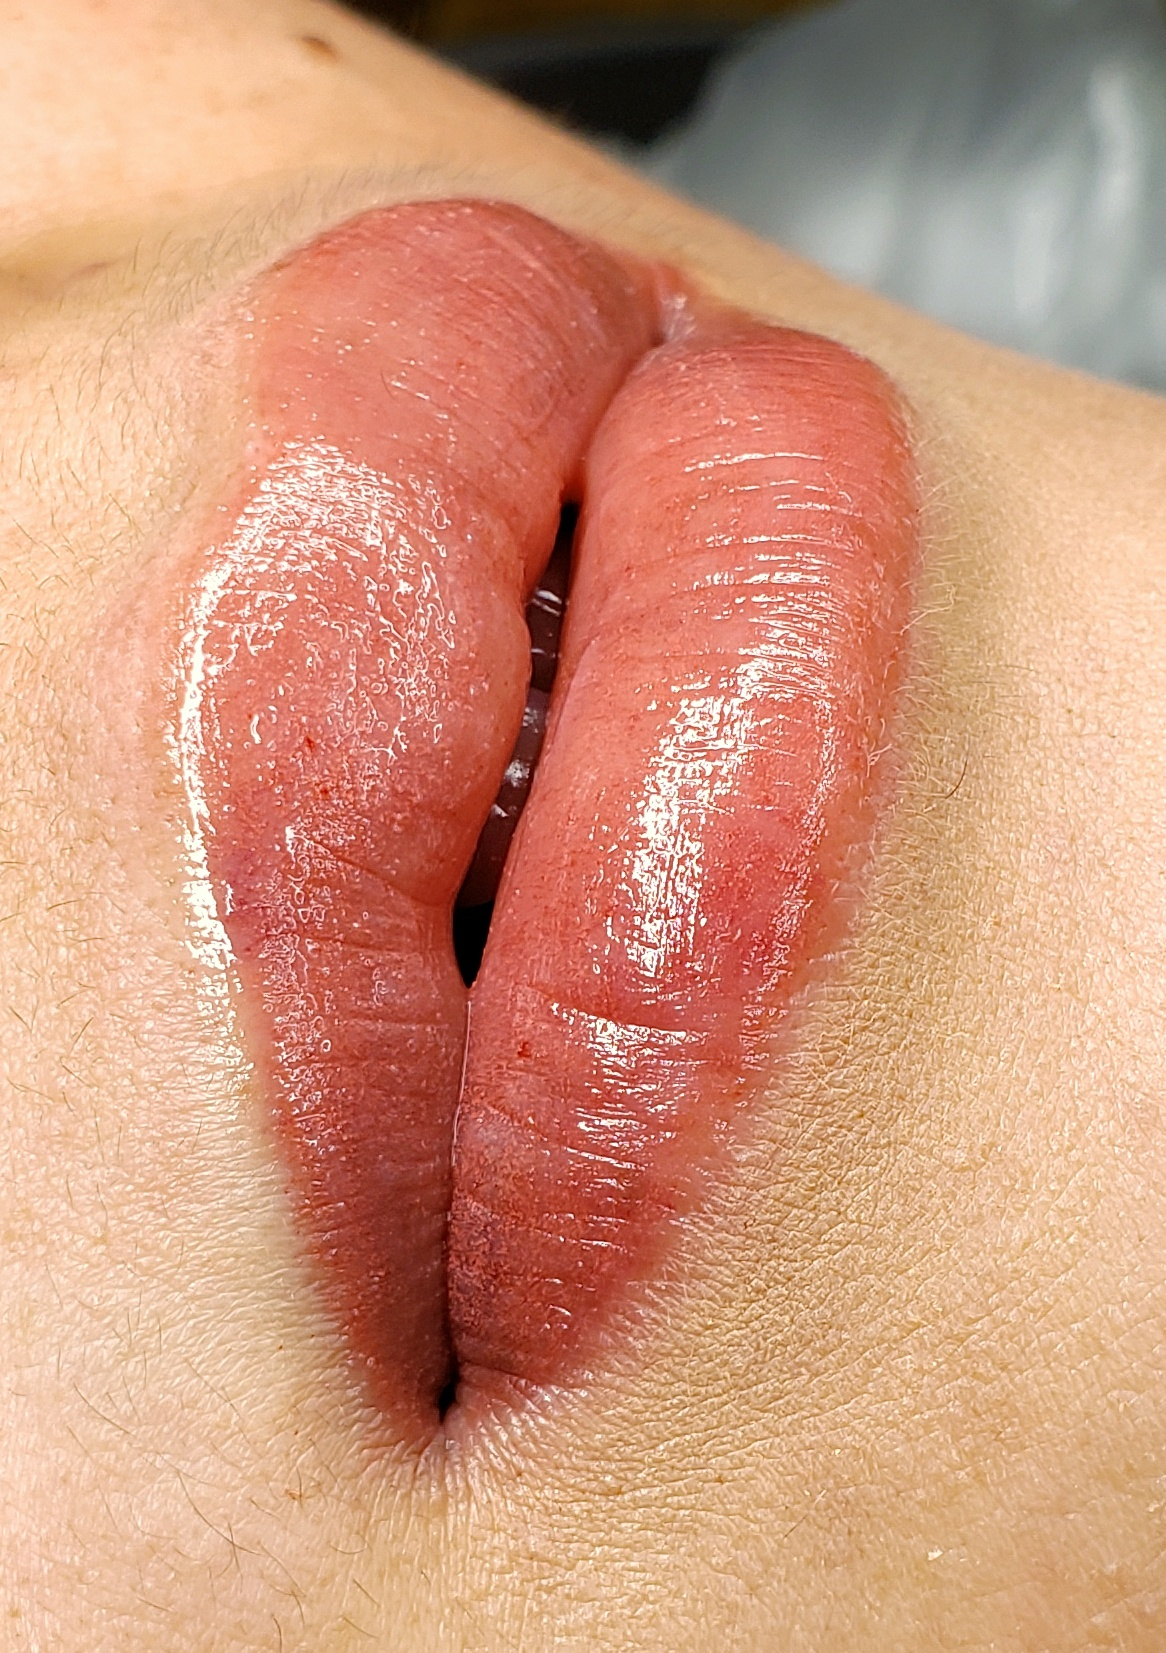 LIP BLUSH REQUIRES AT LEAST 2 SESSIONS. - ***YOU MUST BOOK BOTH SESSIONS***This is important to achieve best results and both must be booked in order to proceedSESSION 1: Initial SessionSESSION 2: 6-8 weeks Perfect Touch-Up